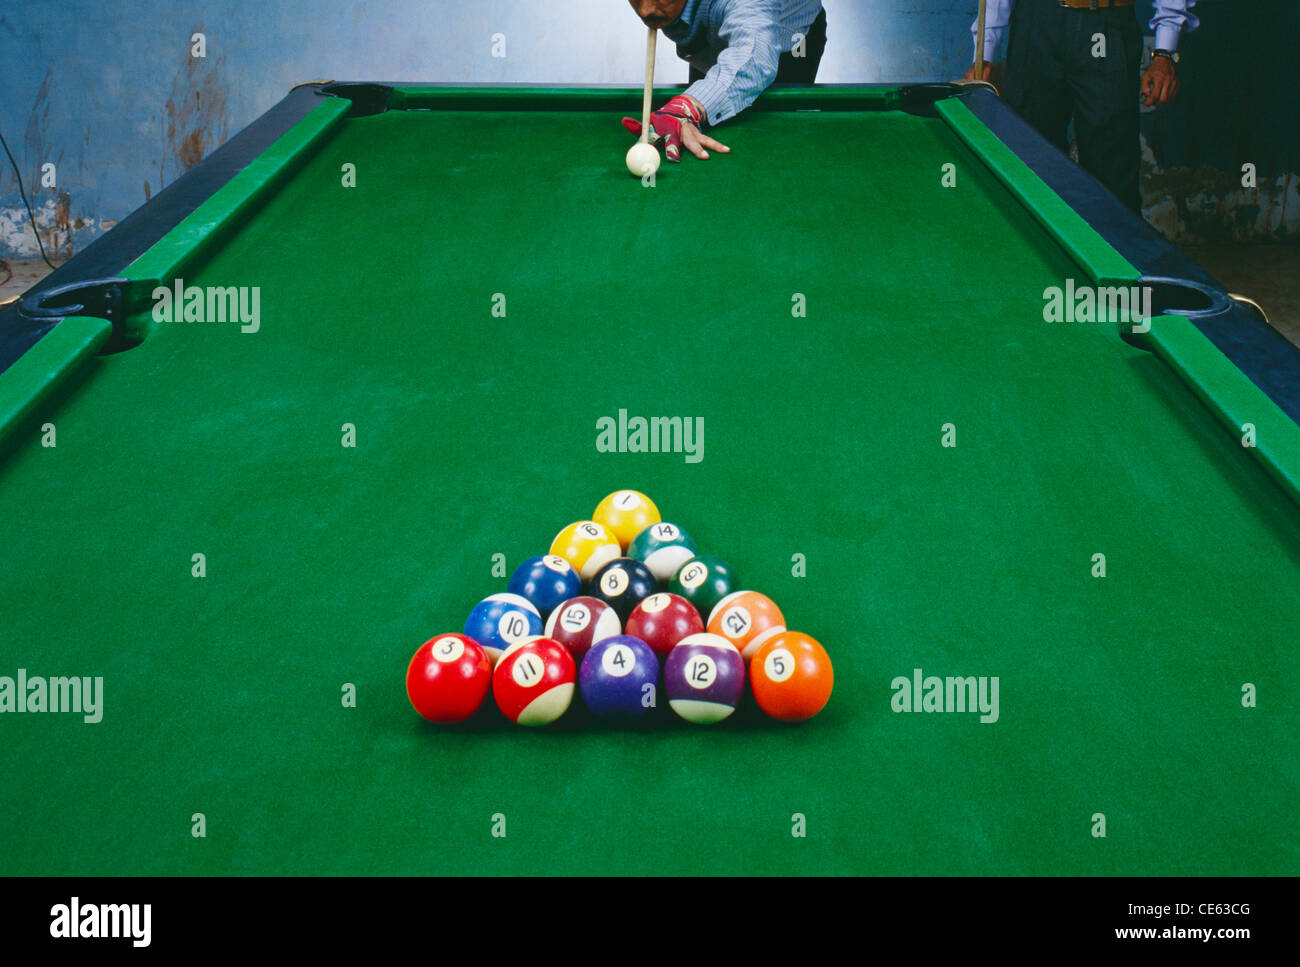 Nice Rack Of Pool Balls Set Up On Table And Man Playing With Cue Ball